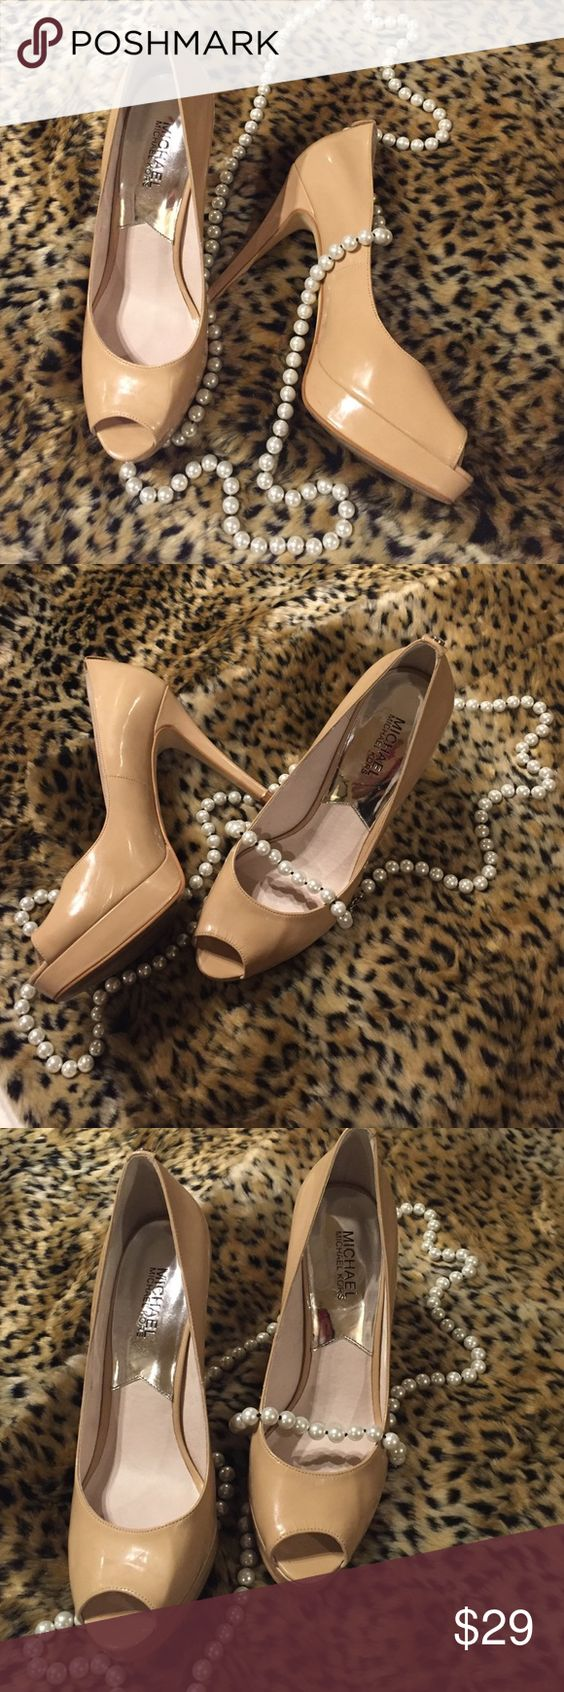 Michael Kors nude peep toe pumps Gorgeous nude pumps worn once and like new. Not shiny but not totally matte extremely classic. 4 inch heel with 1 inch platform on front. A great deal! Michael Kors Shoes Heels